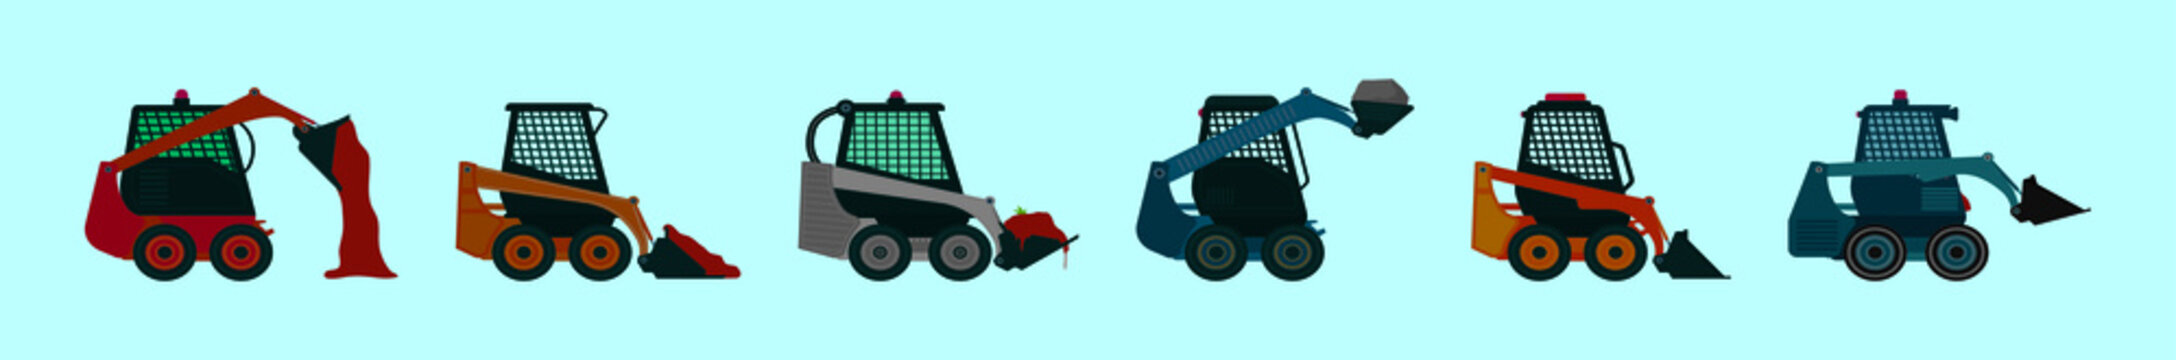 set of skid steer cartoon icon design template with various models. vector illustration isolated on blue background